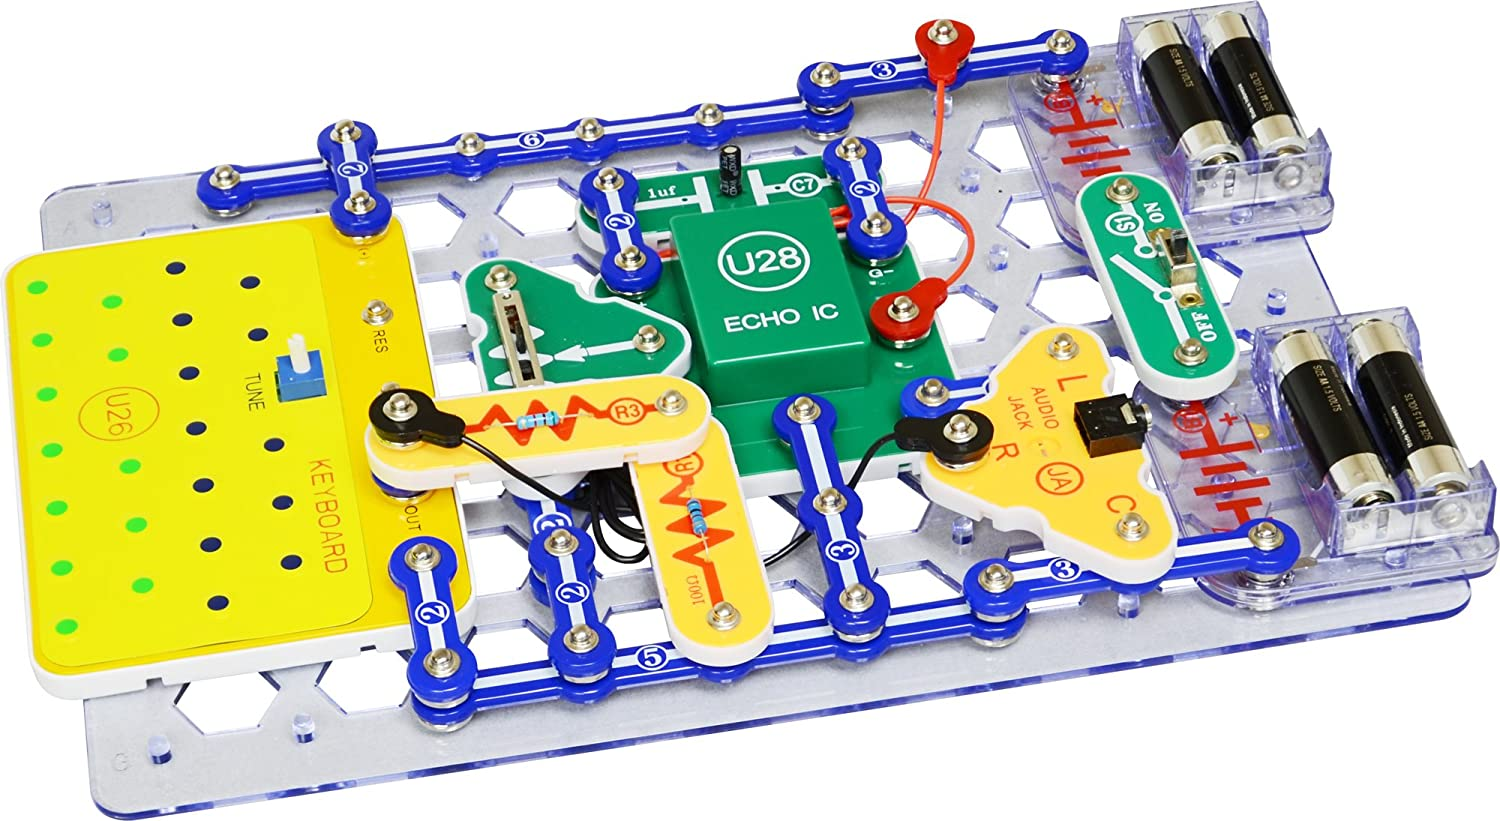 Snap Circuits Sound Electronics Exploration Kit 185 Elenco Pro Sc500 Discovery Science Fun Stem Projects 4 Color Project Manual 40 Modules Unlimited Toys